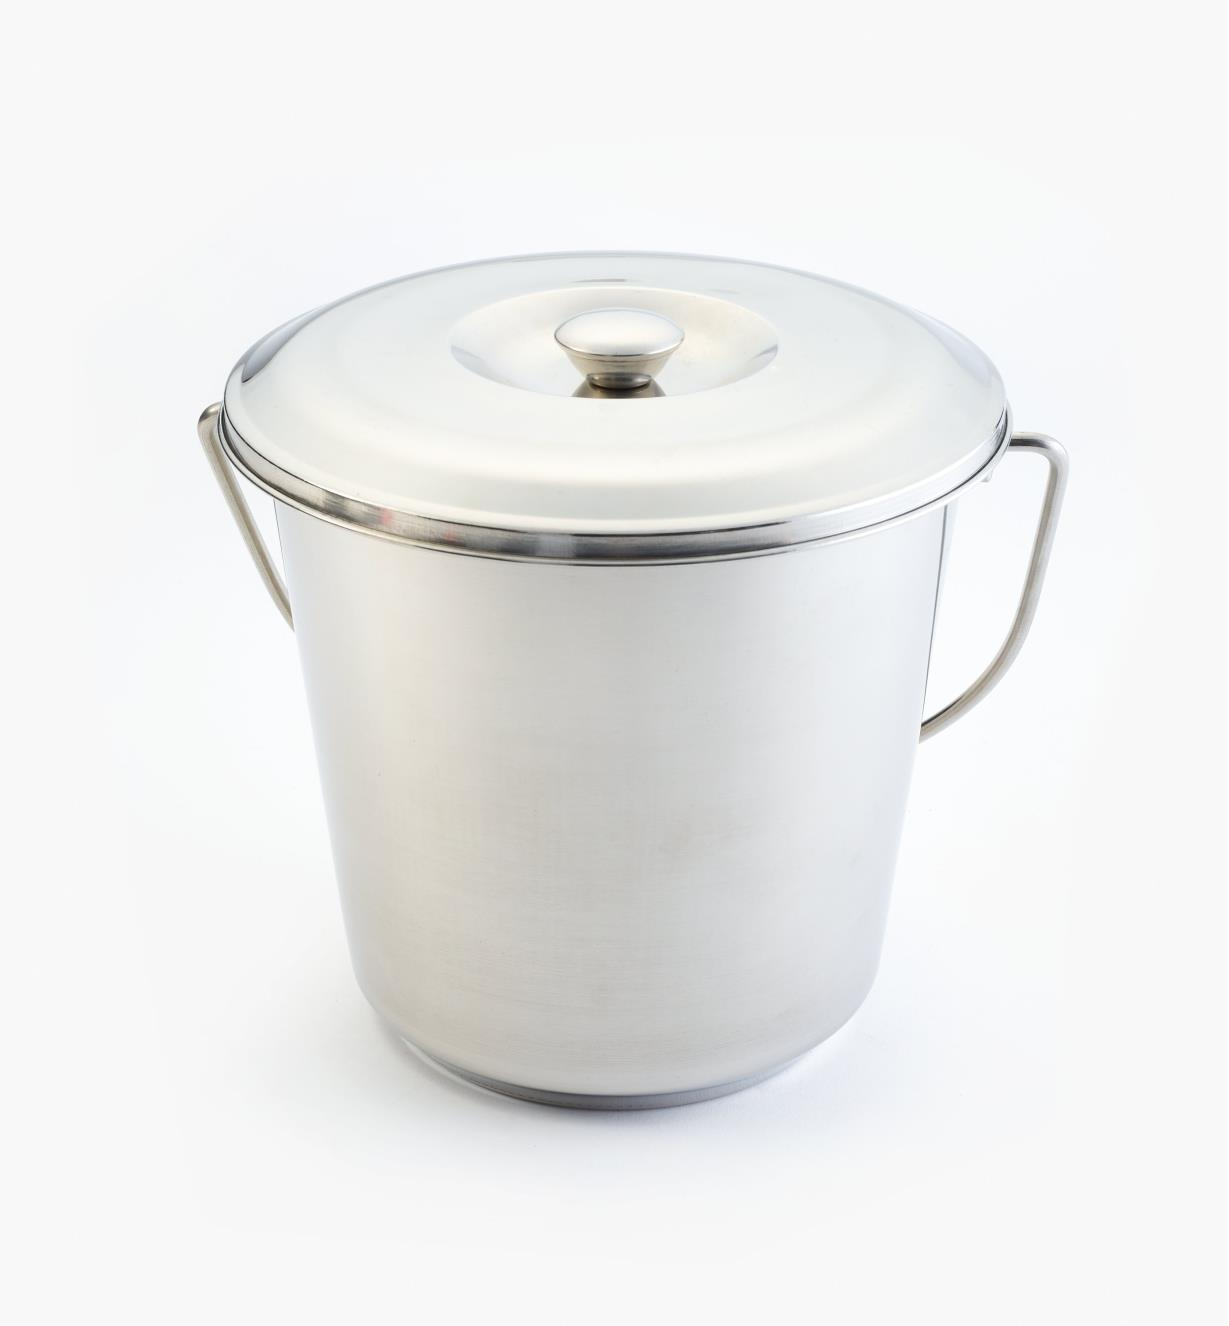 XG150 - Stainless Steel Compost Pail, 6 litres